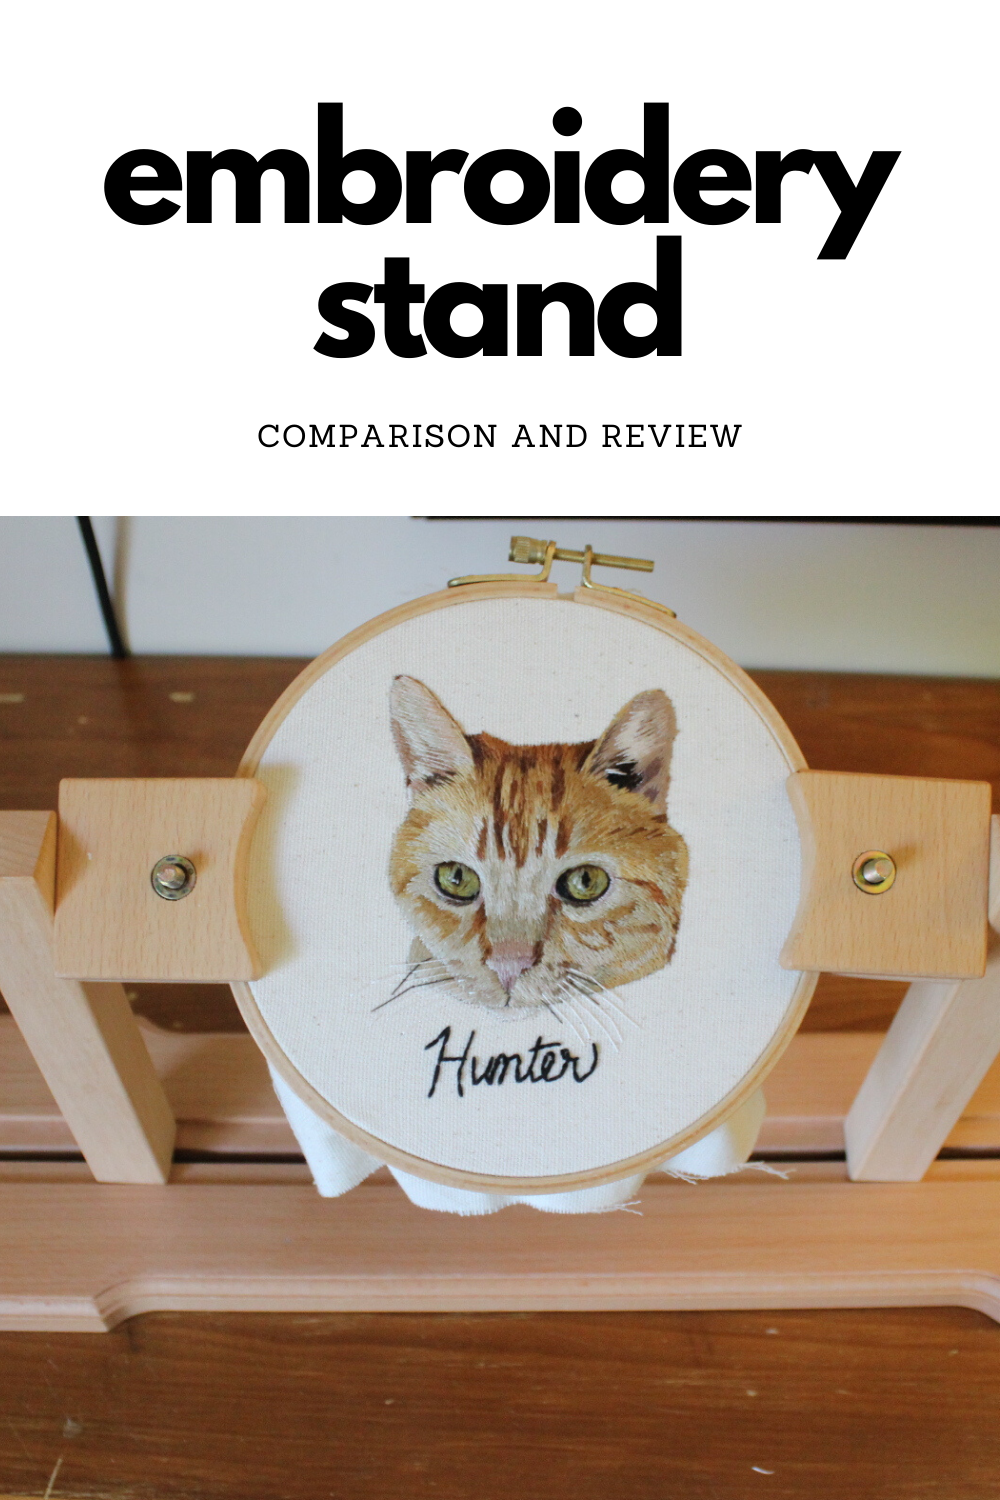 embroidery hoop stand comparison and review